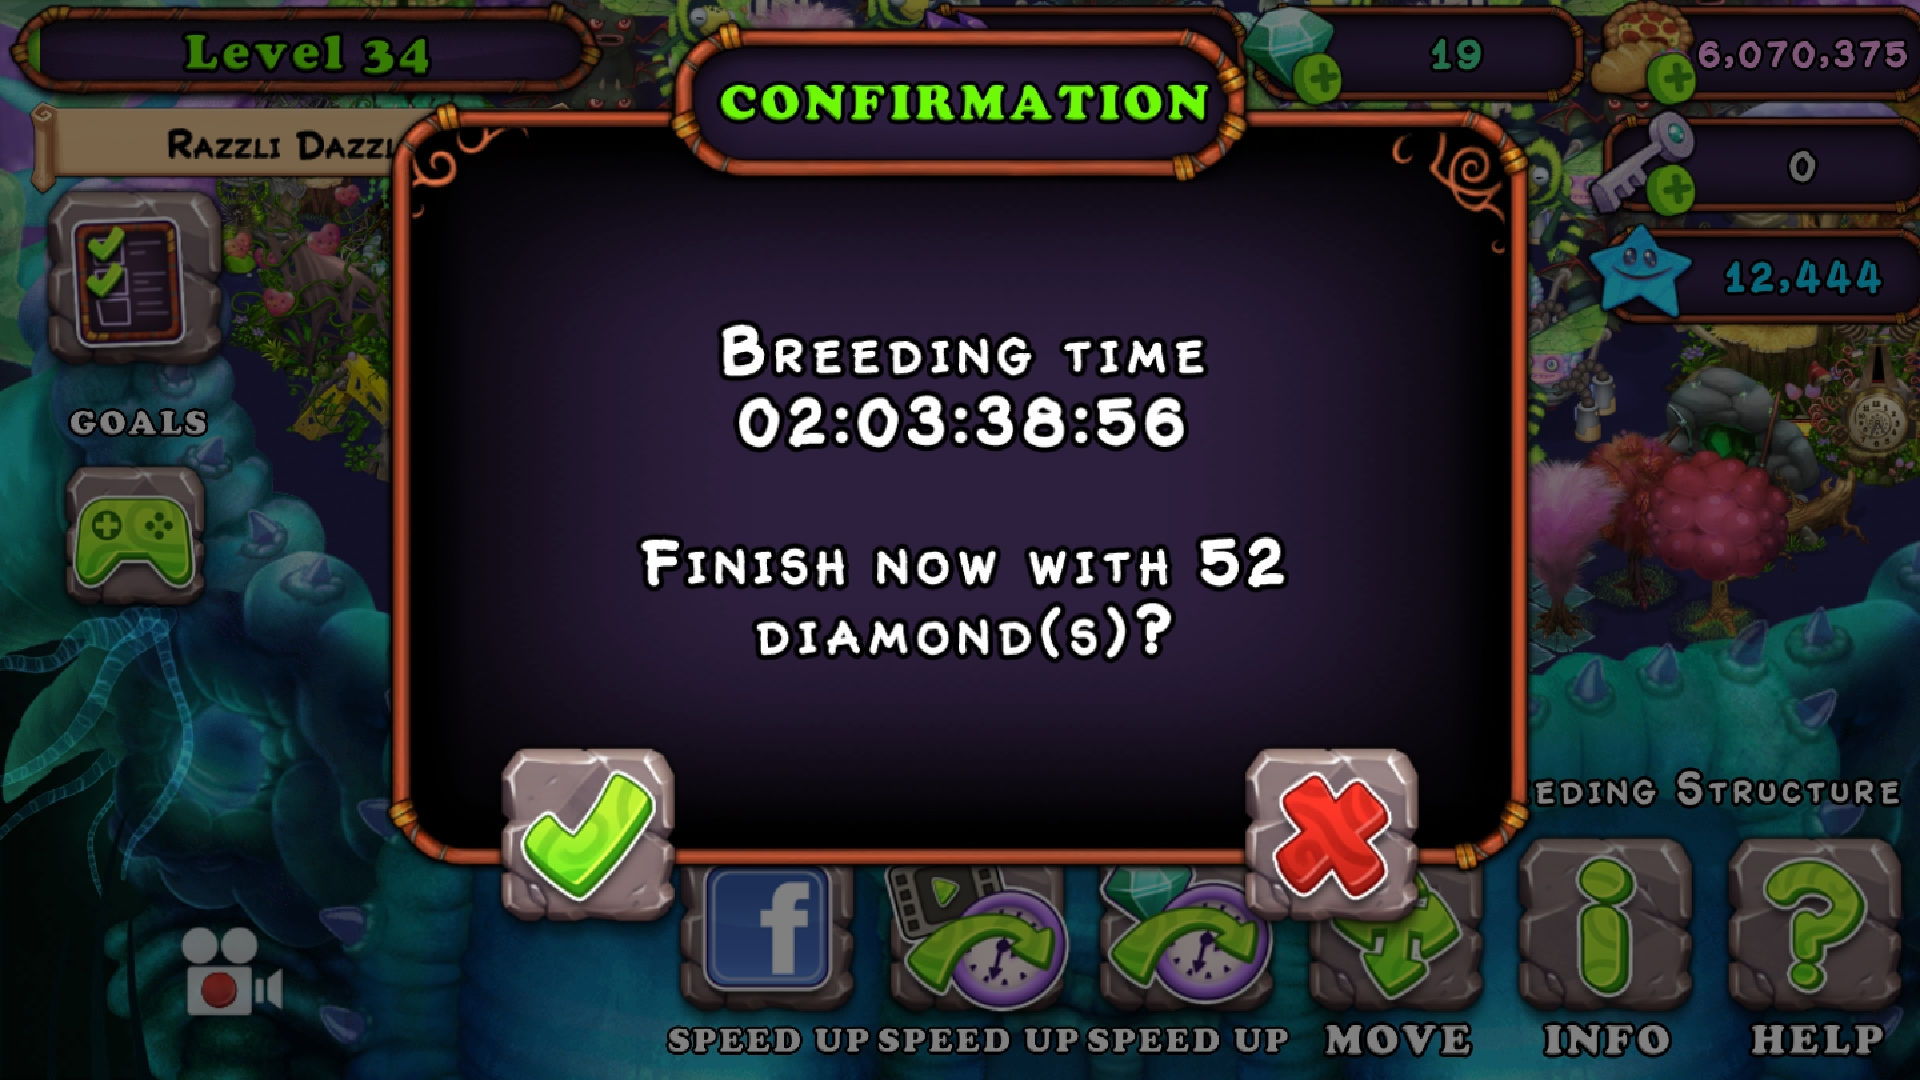 Yay! I got a rare bellowfish or a rare jellbily. I'll see what it was after 2 days lol